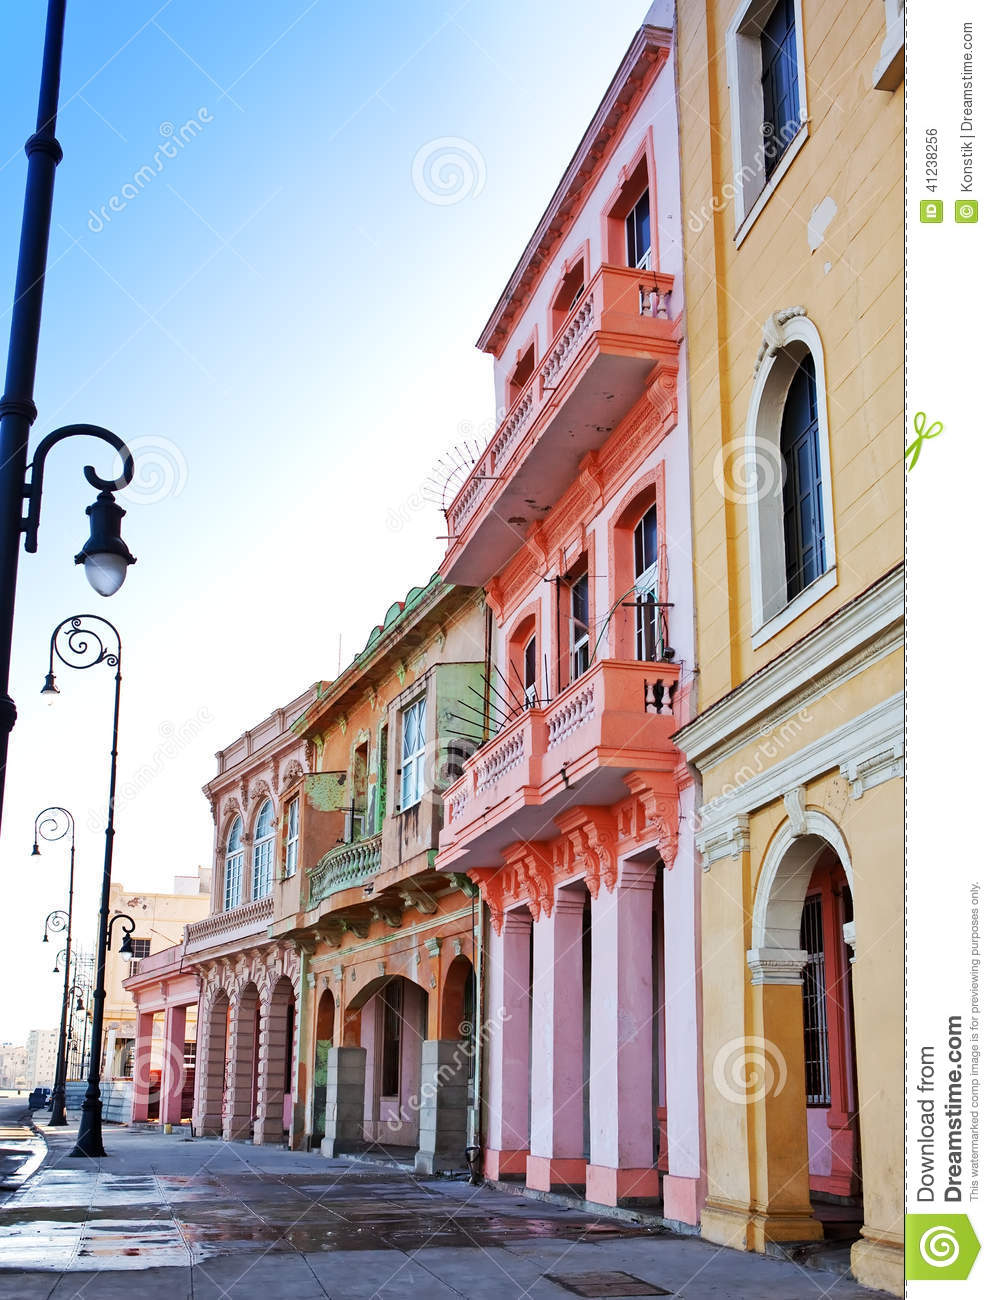 Cuba. Streets Of Old Havana. Stock Photo - Image: 41238256